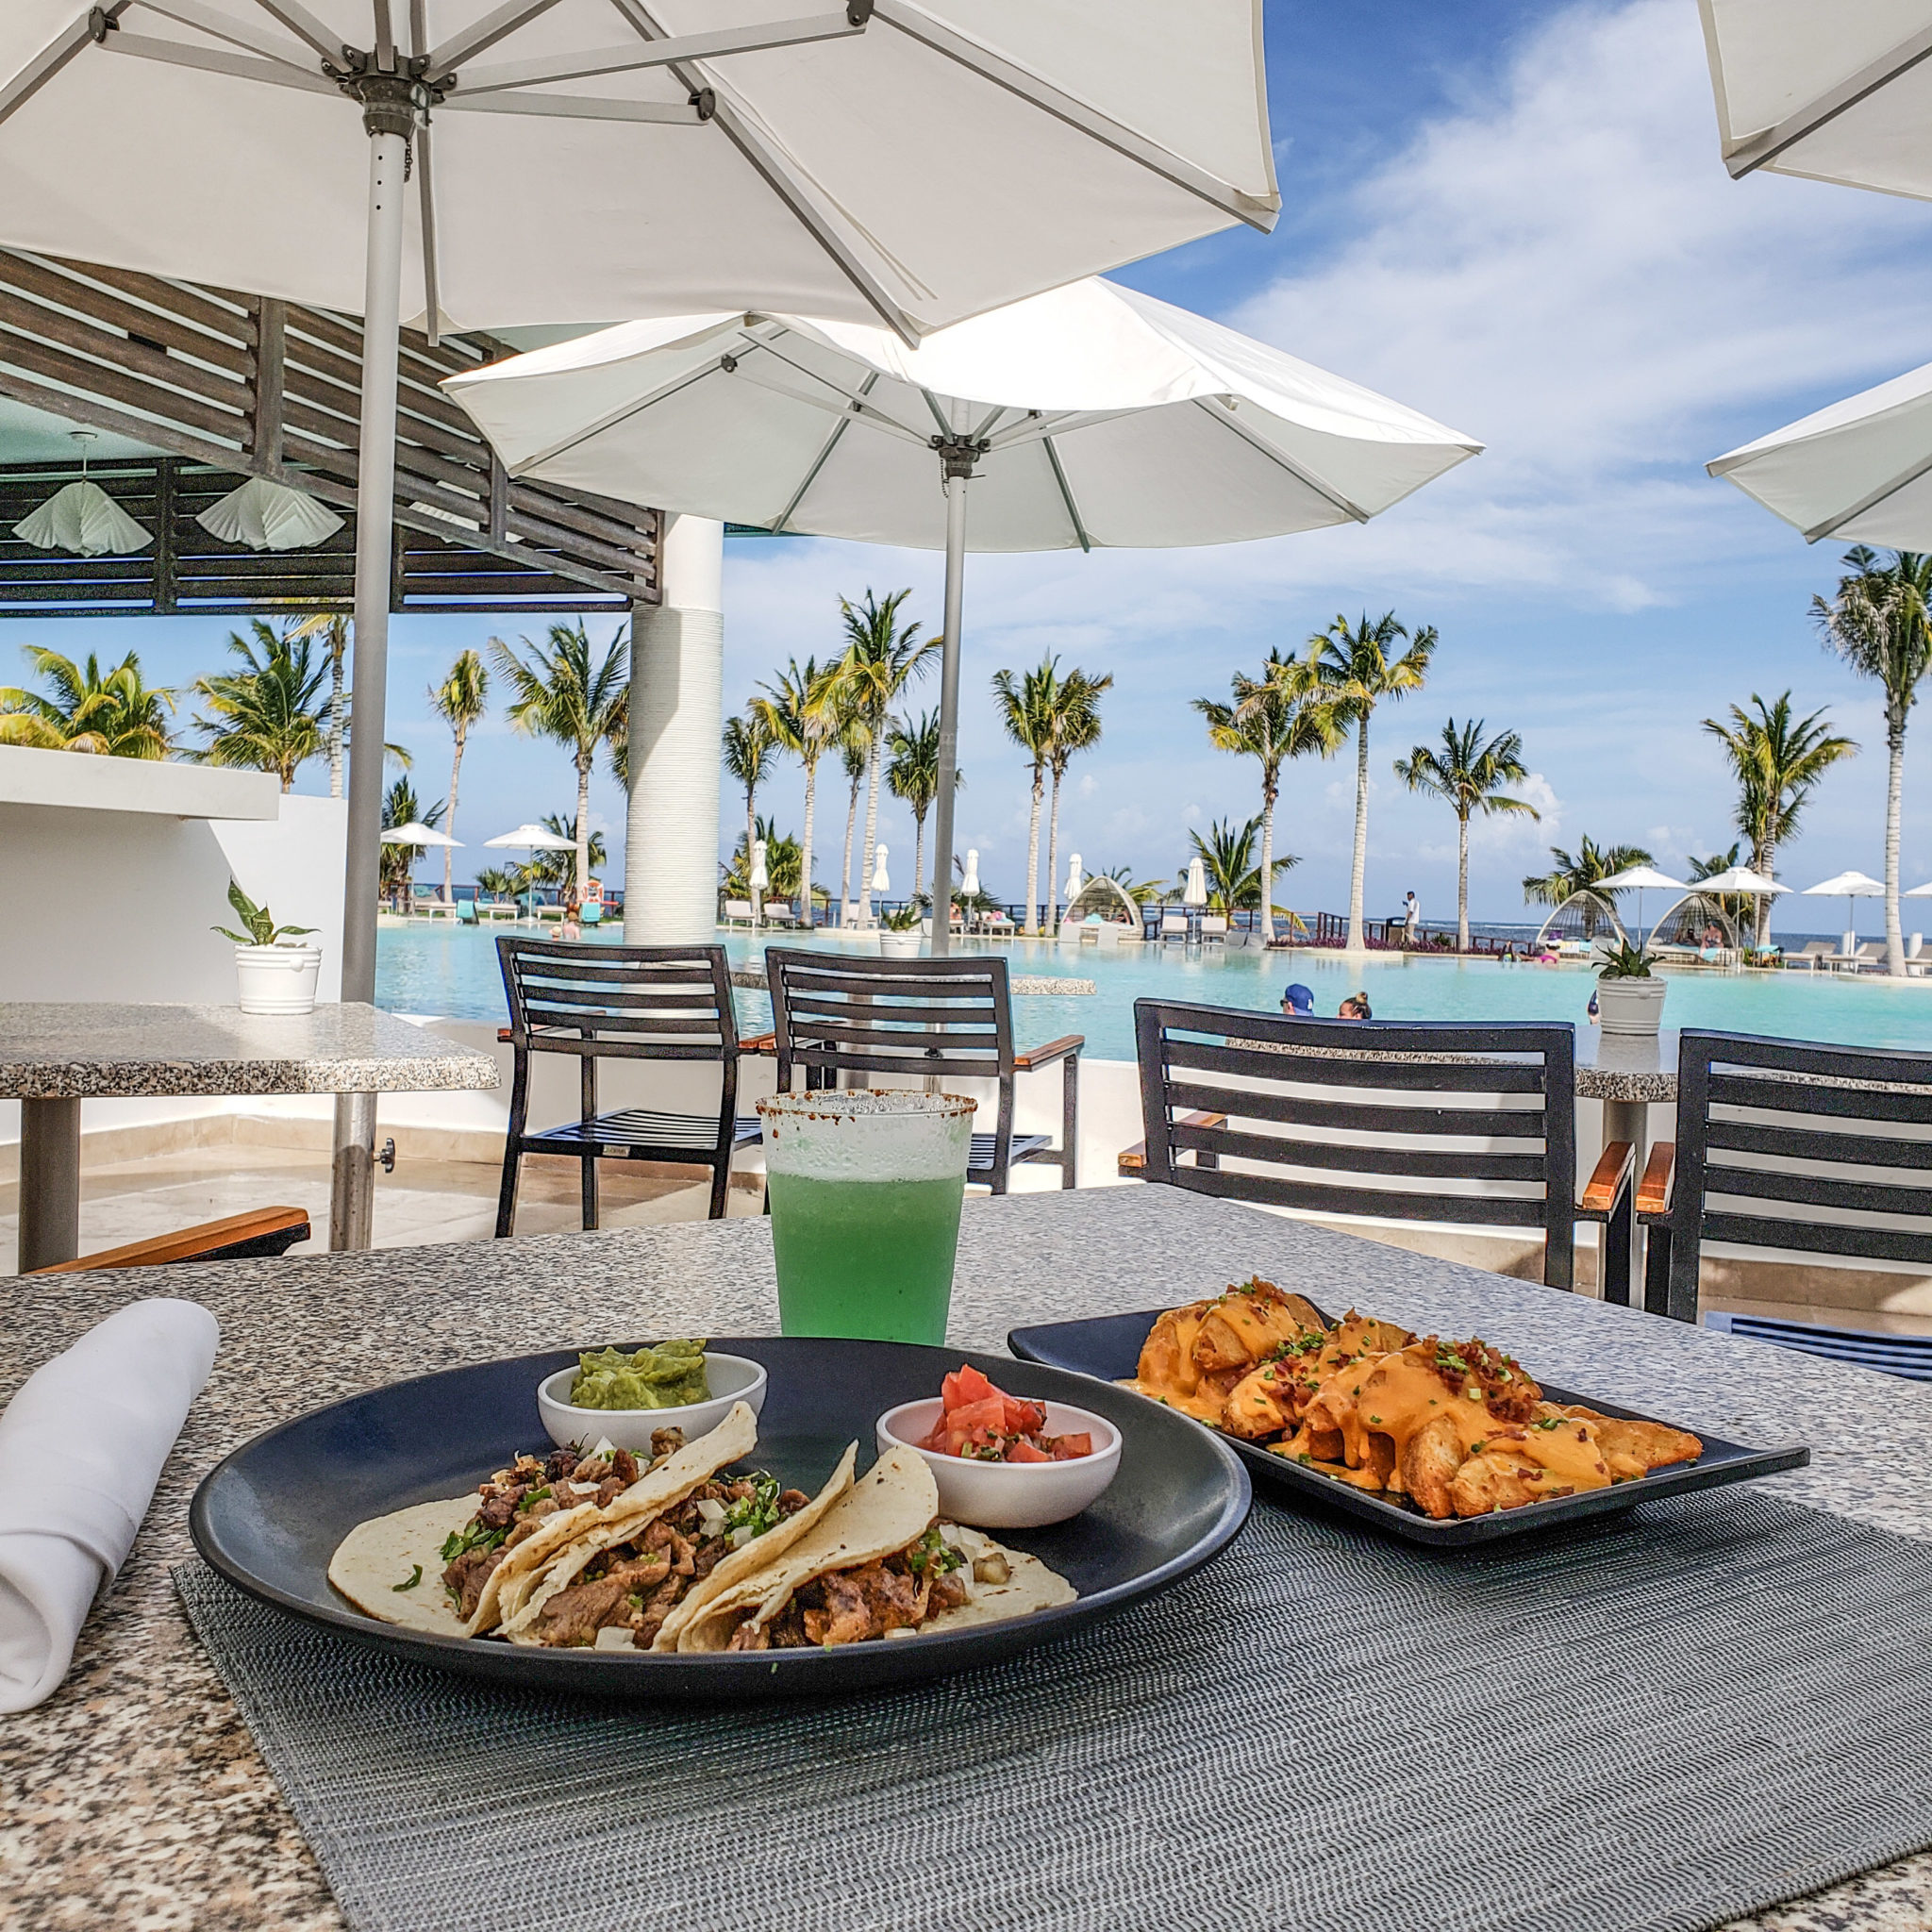 Haven Riviera - Cancun - Haven Resorts - Mexico - Quintana Roo - Pool Bar